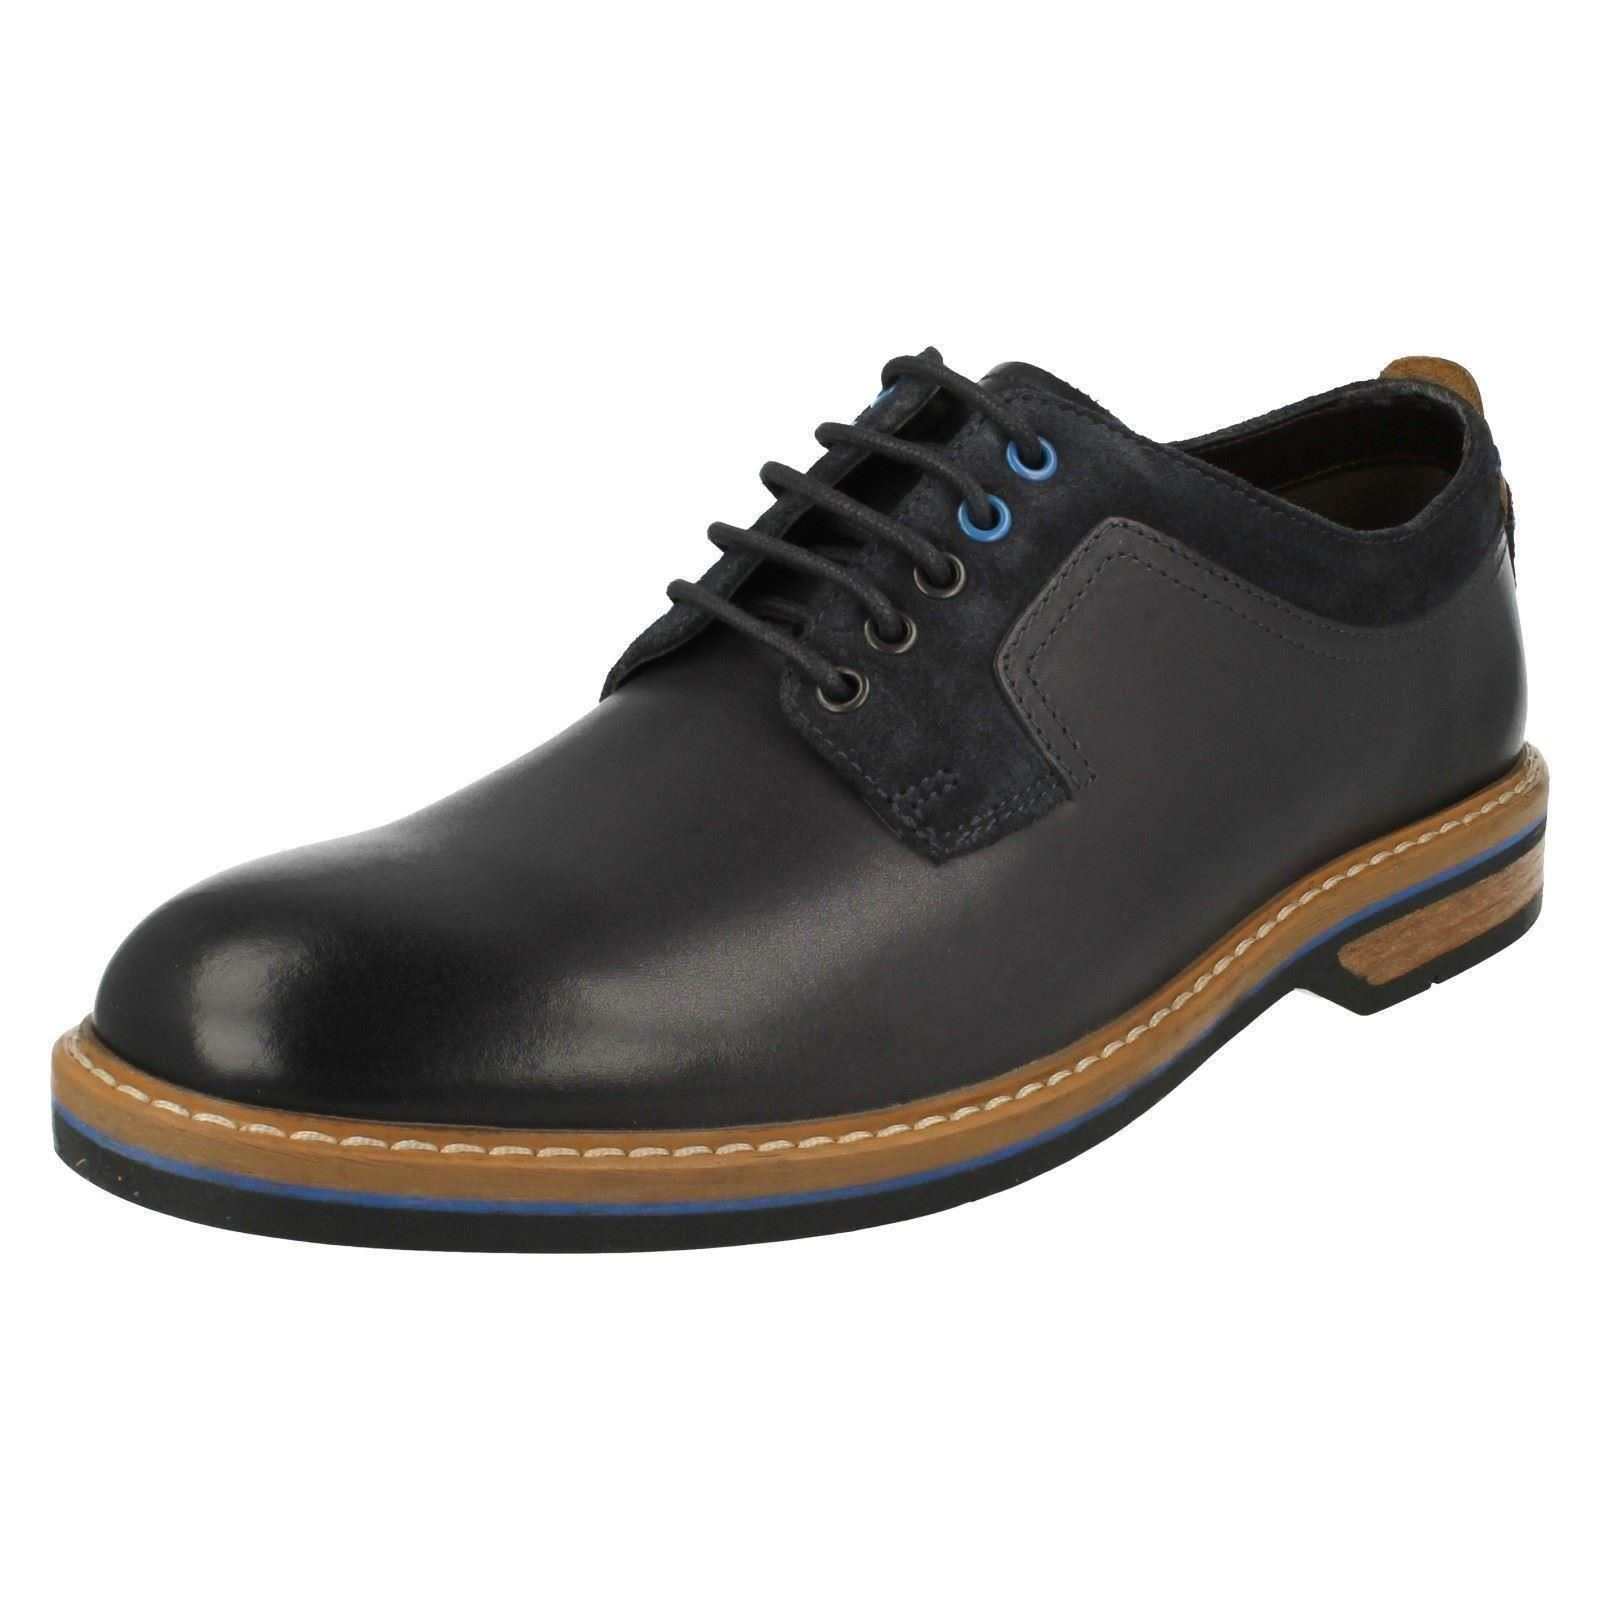 mens clarks lace up shoes pitney walk ebay